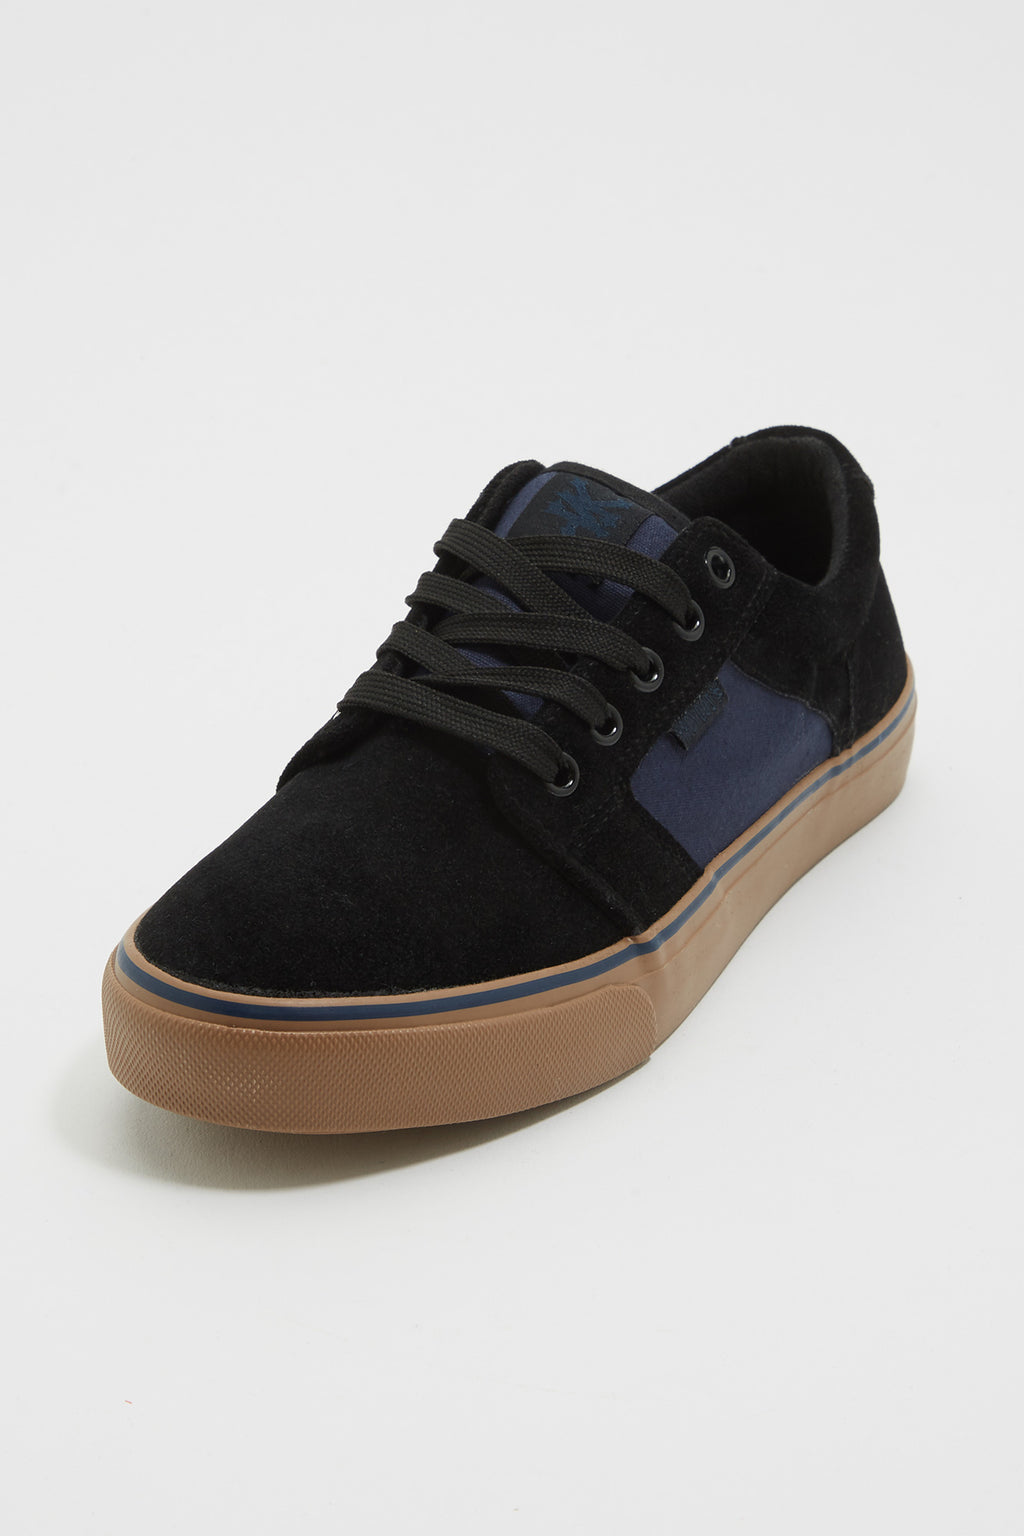 Zoo York Mens Blue and Black Canvas Lace Up Shoes